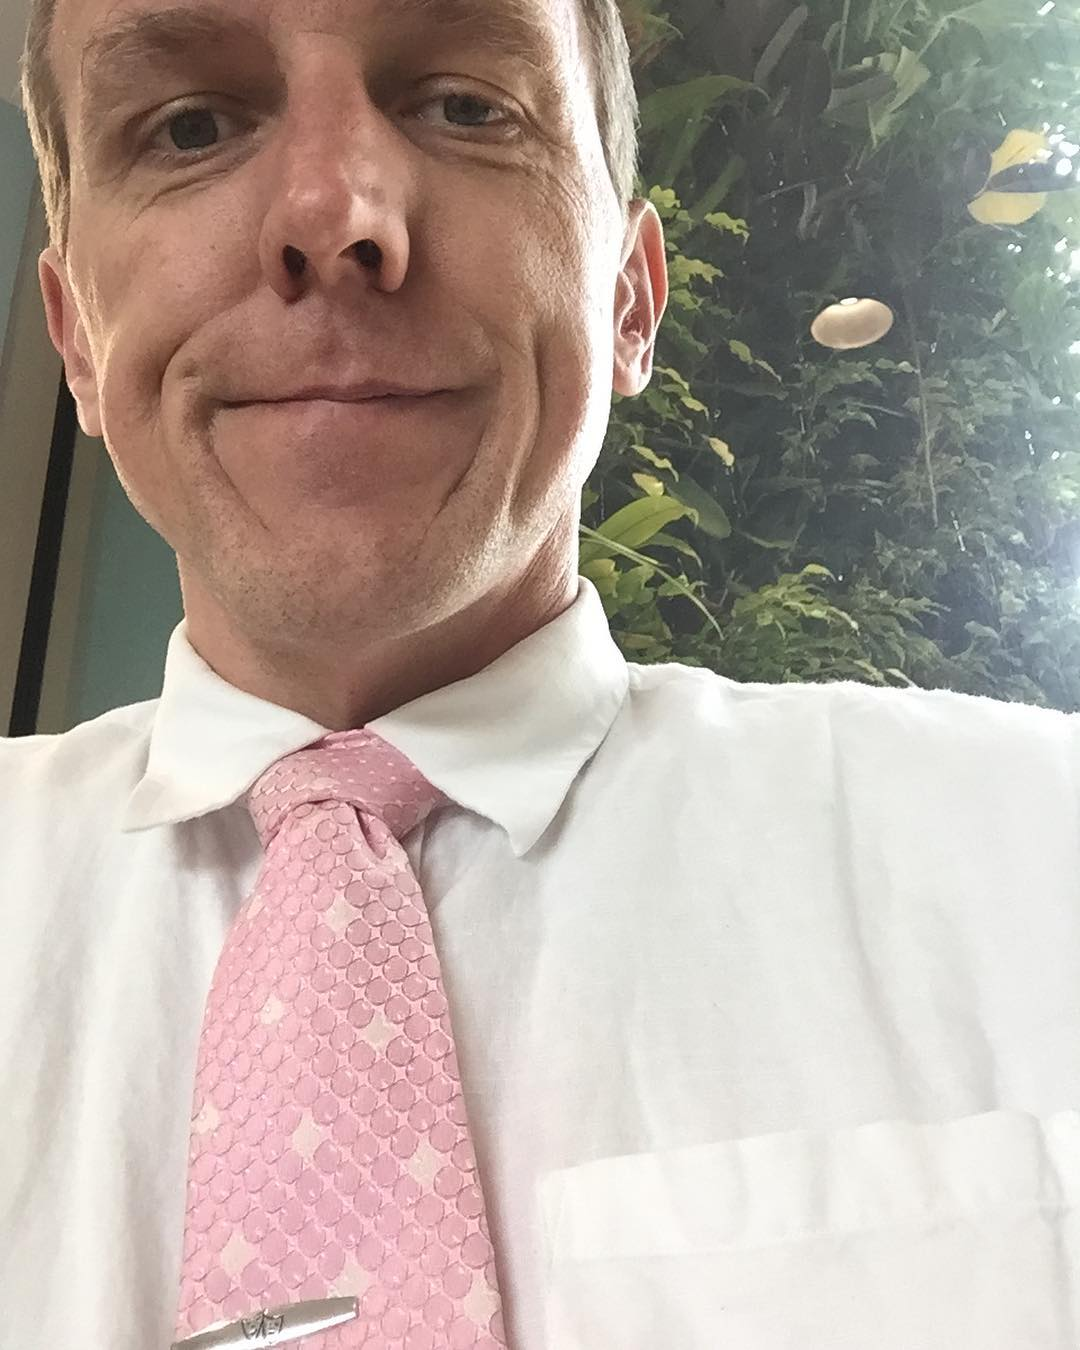 #internationalpinkday for #tiedayfriday #ftw (with living wall in bkgd)